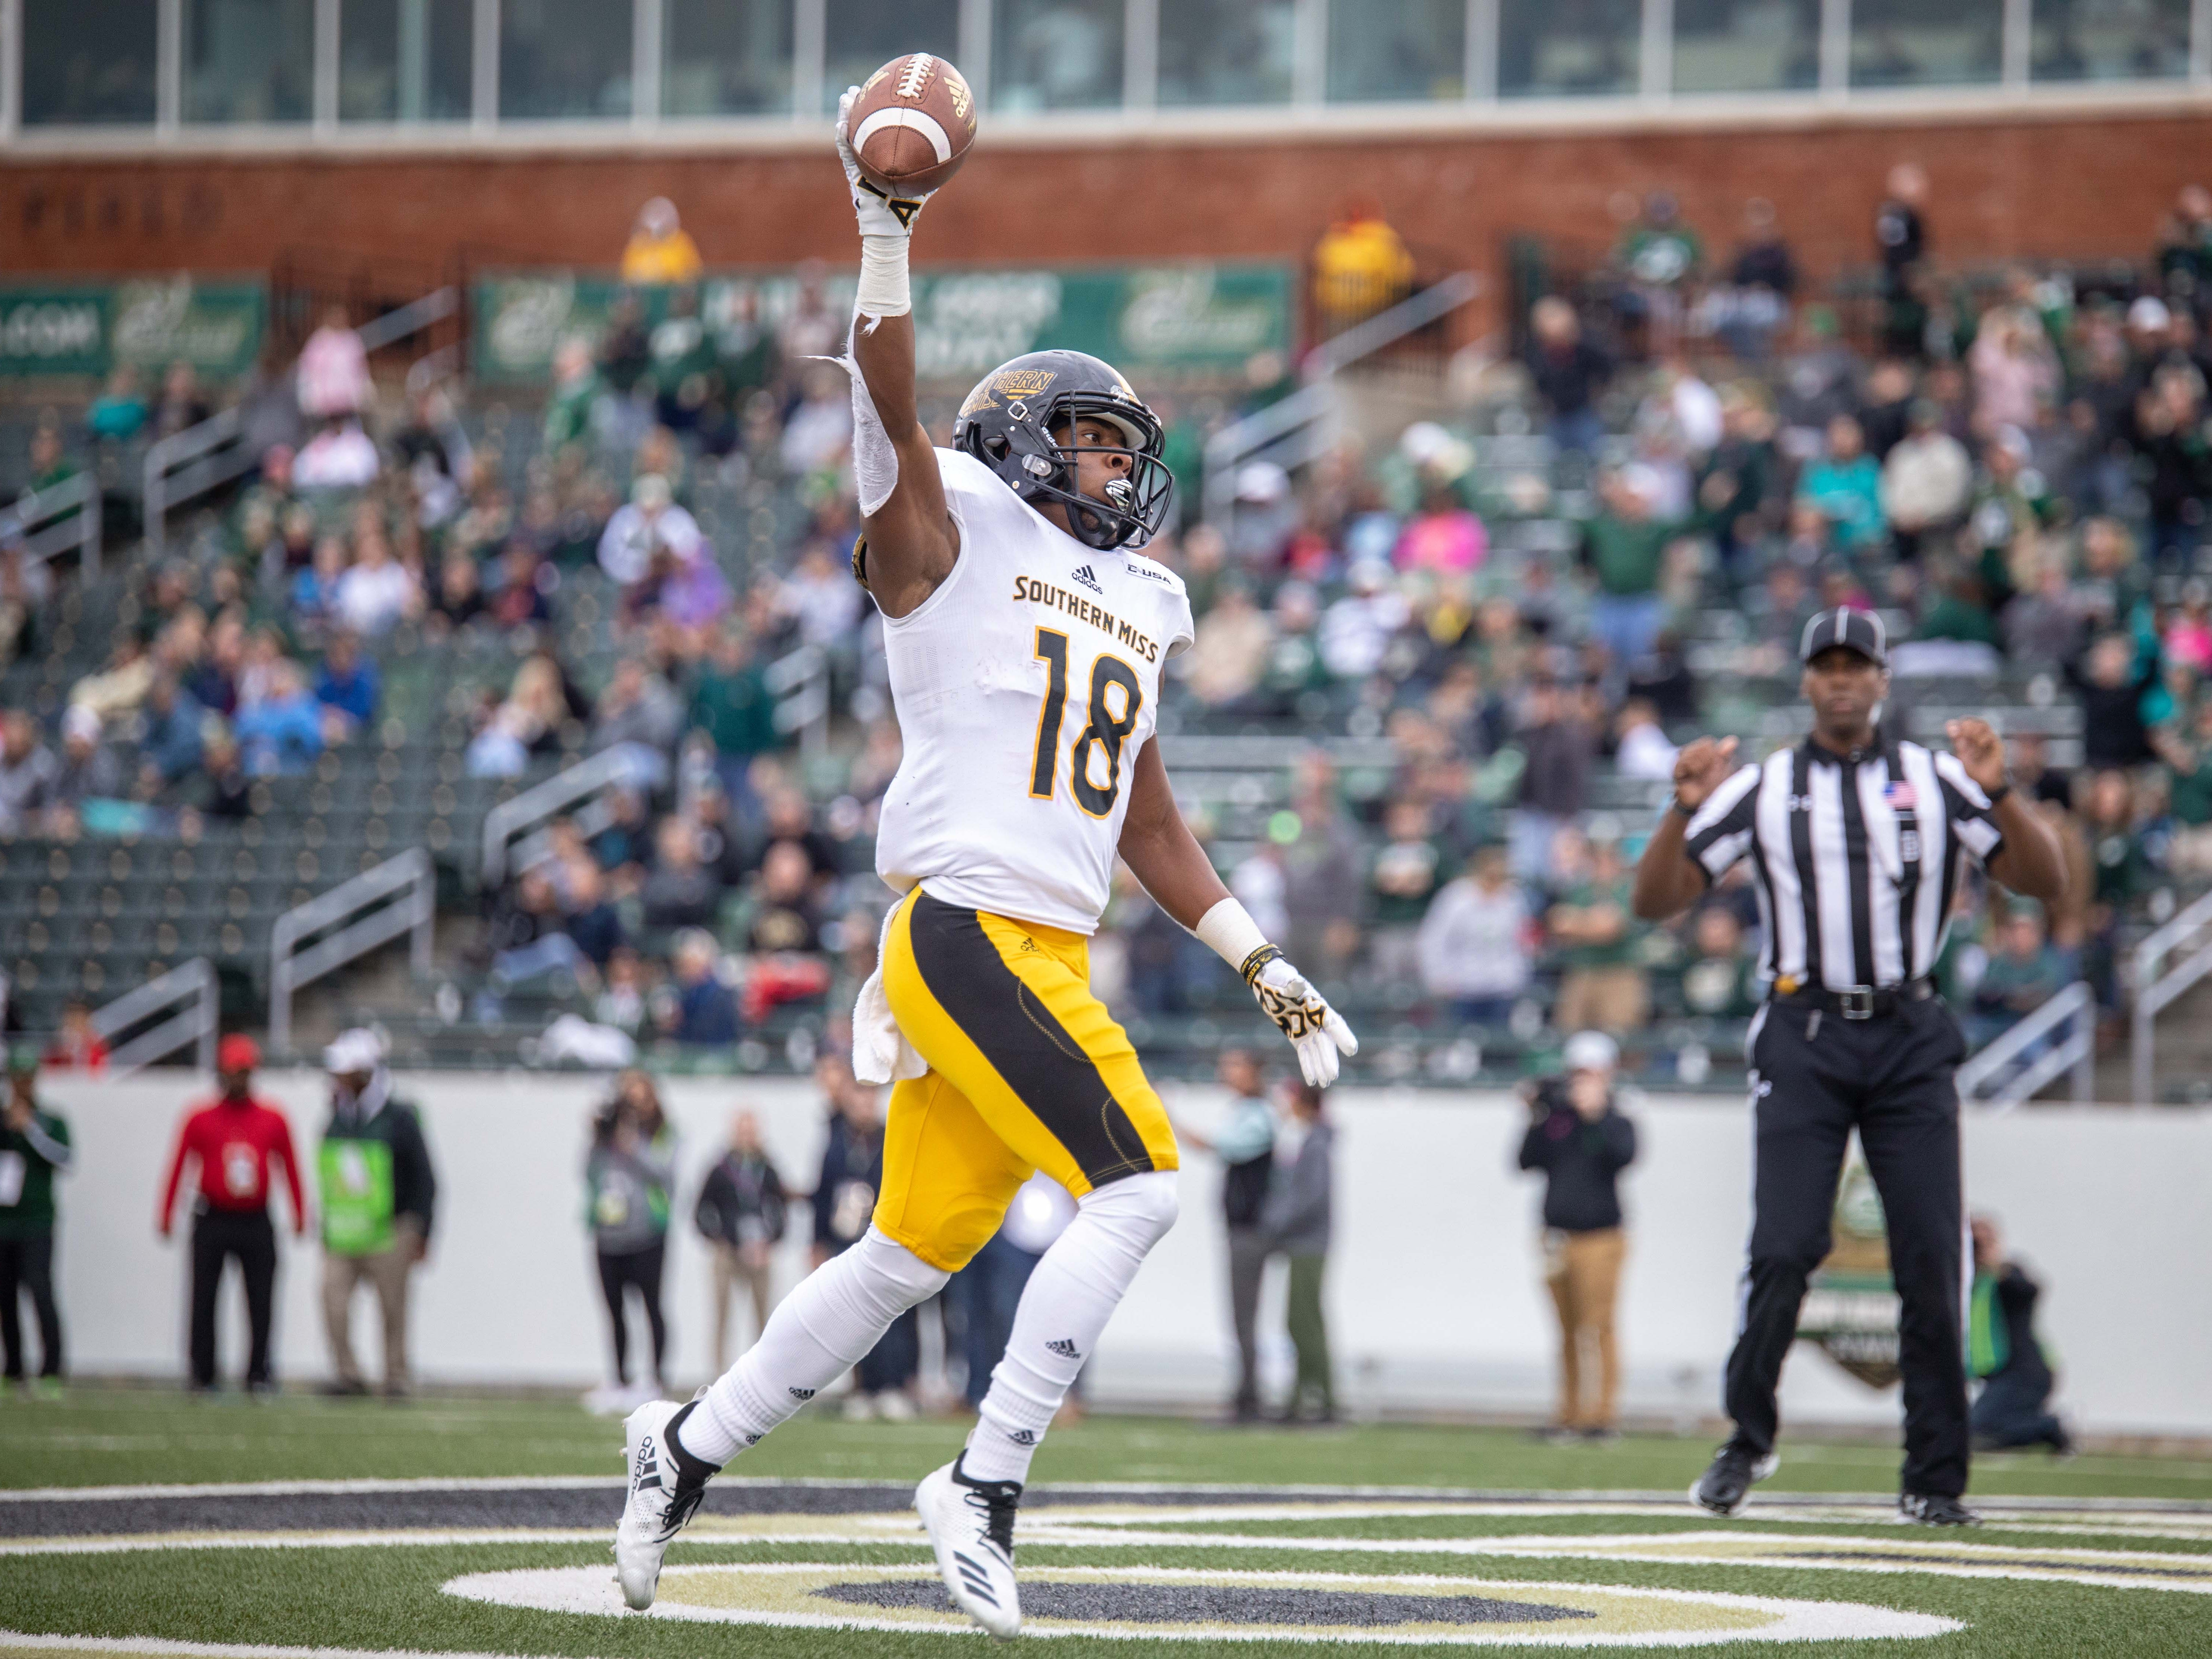 Southern Miss wide receiver De'Michael Harris (18) celebrates a 43-yard touchdown pass Saturday in Charlotte, N.C.